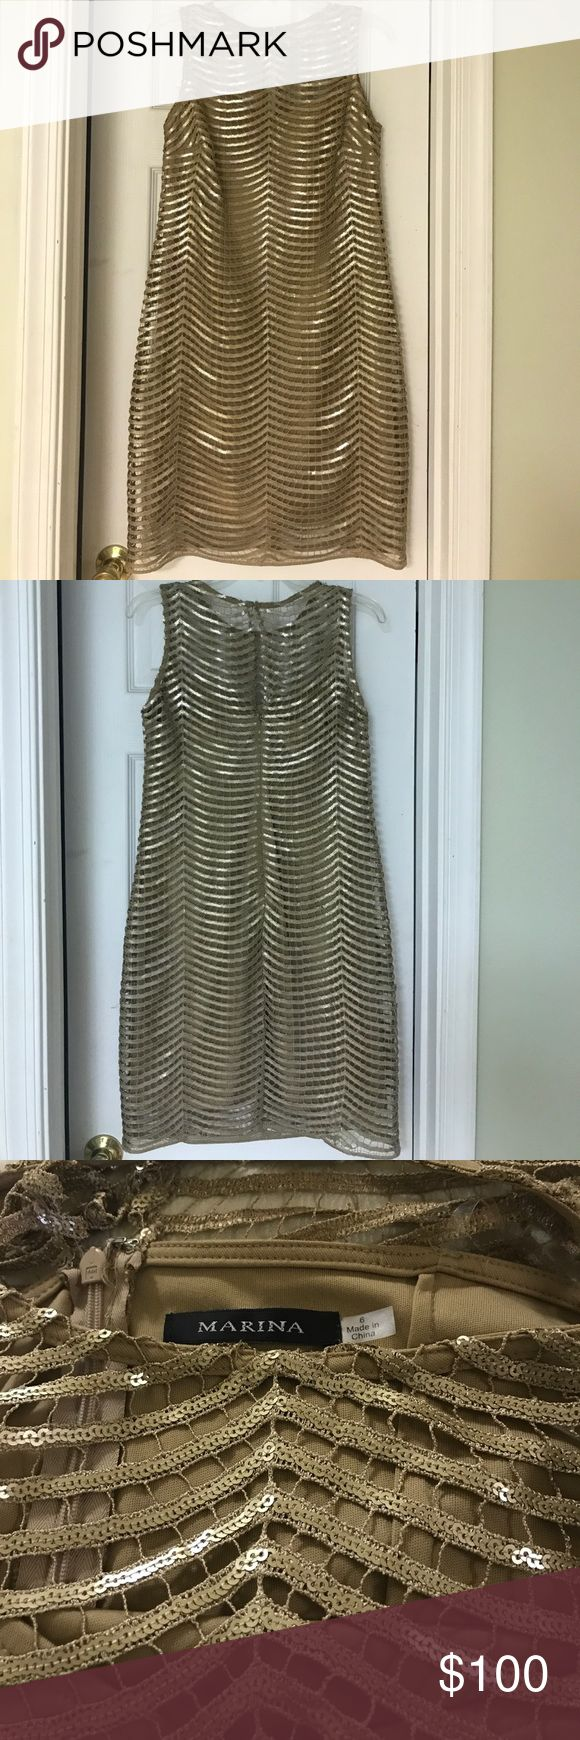 Special occasion beautiful dress So gorgeous very elegant more in person gold with sequence and linen, perfect for a party you will shine, immaculate condition. I bought in Nordstrom store. Marina Dresses